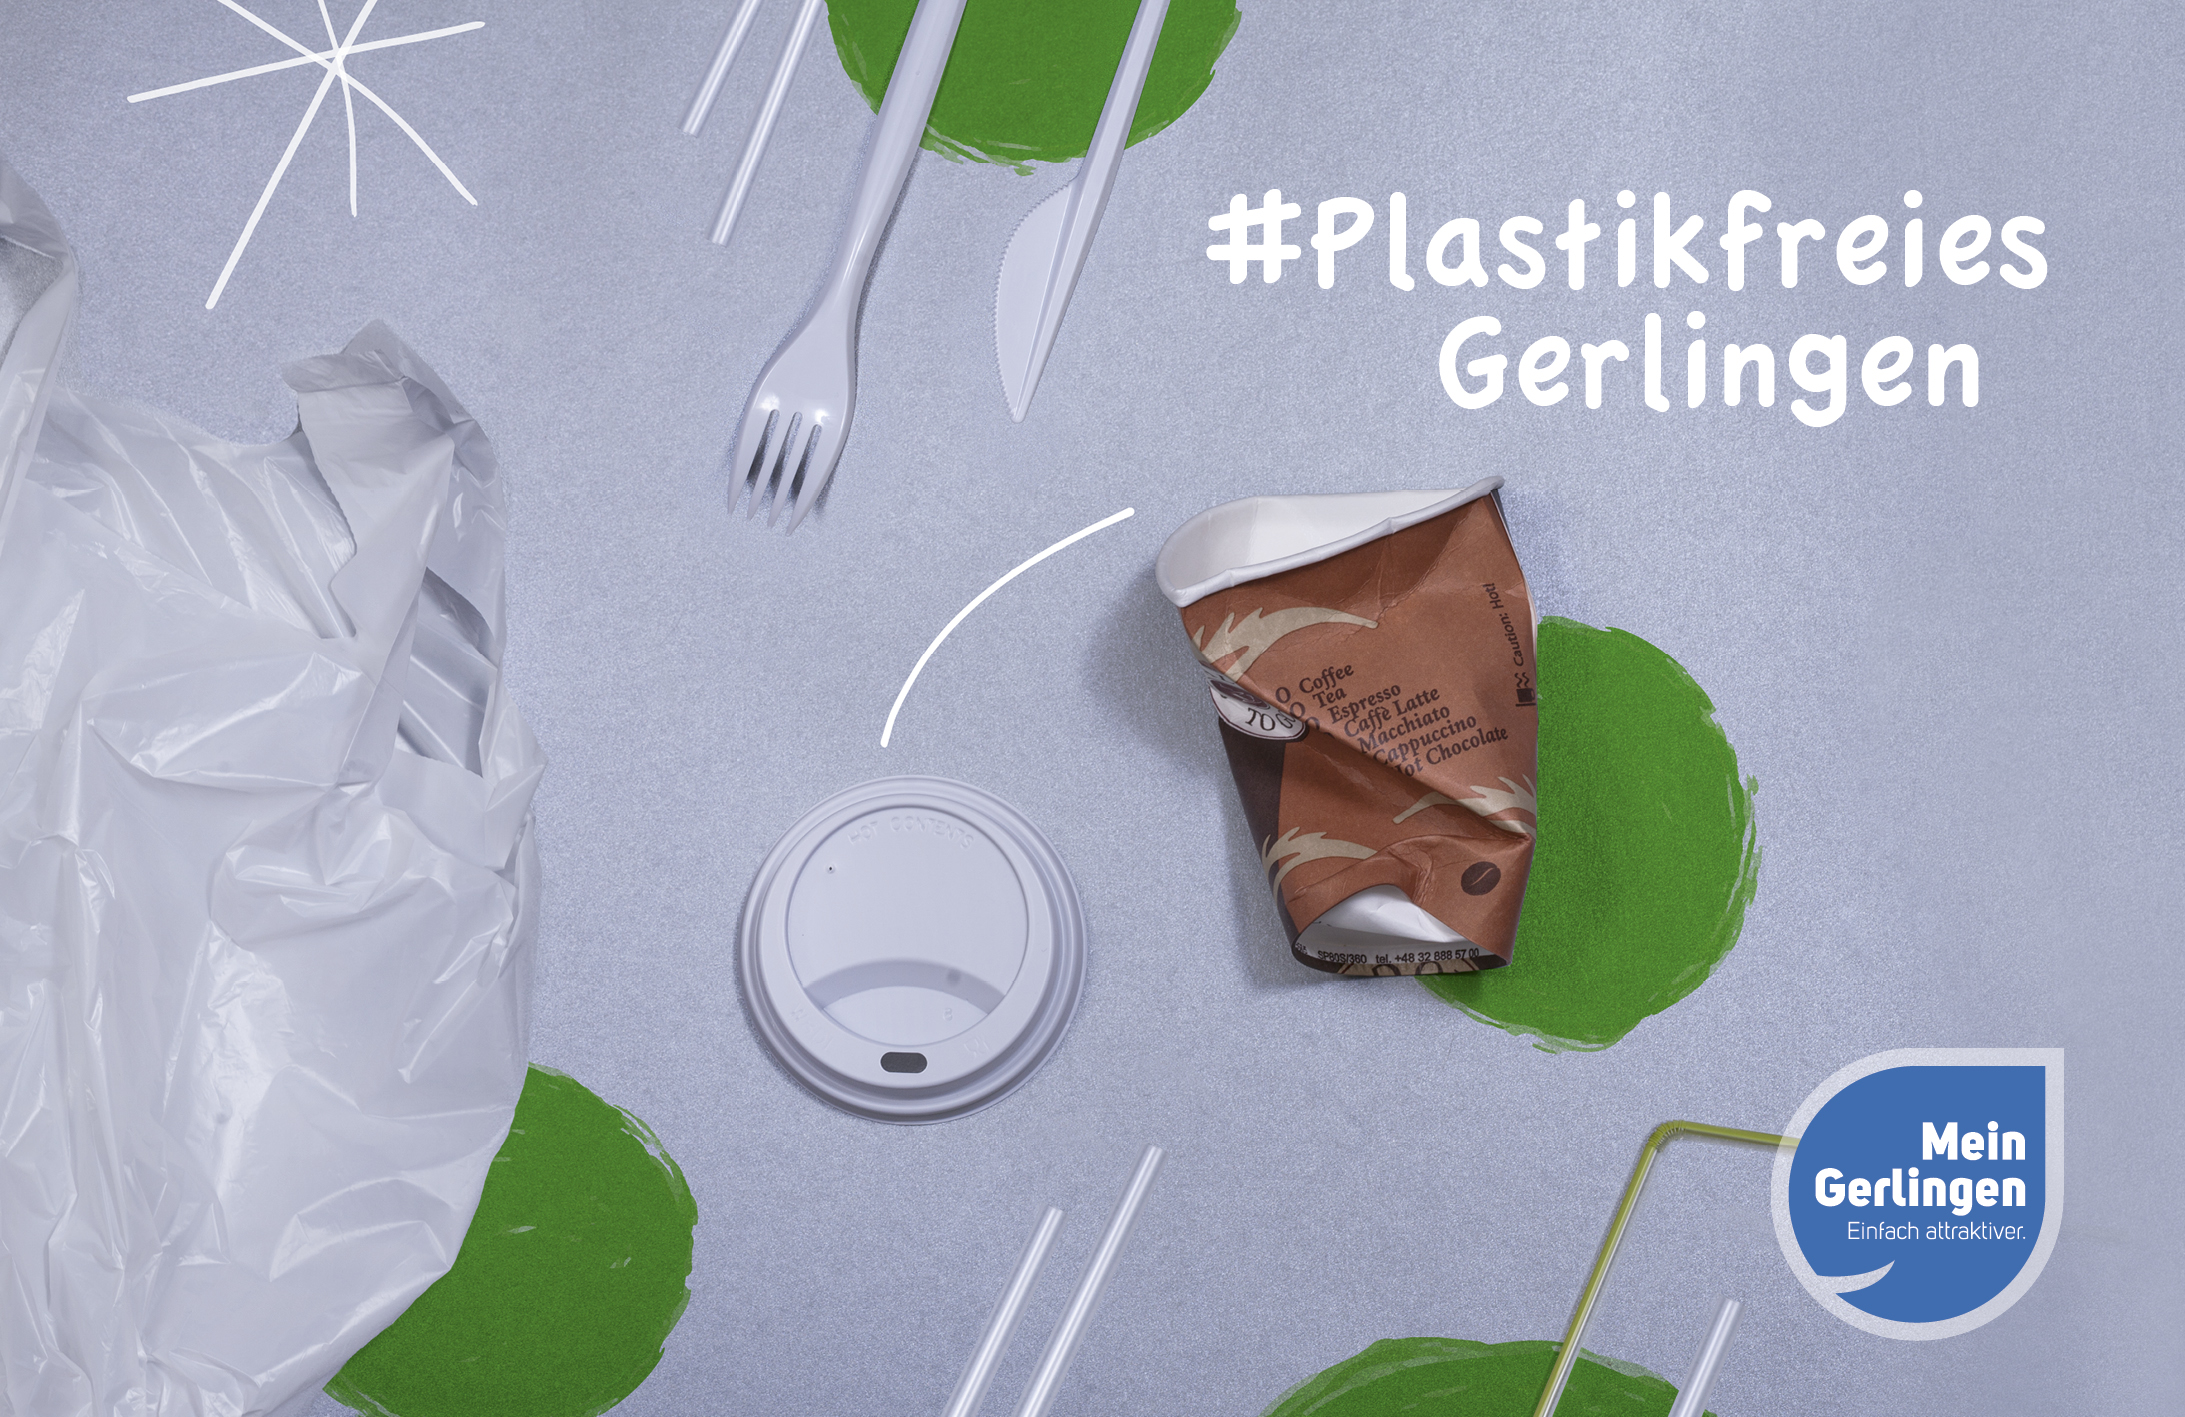 Initiative Plastikfreies Gerlingen